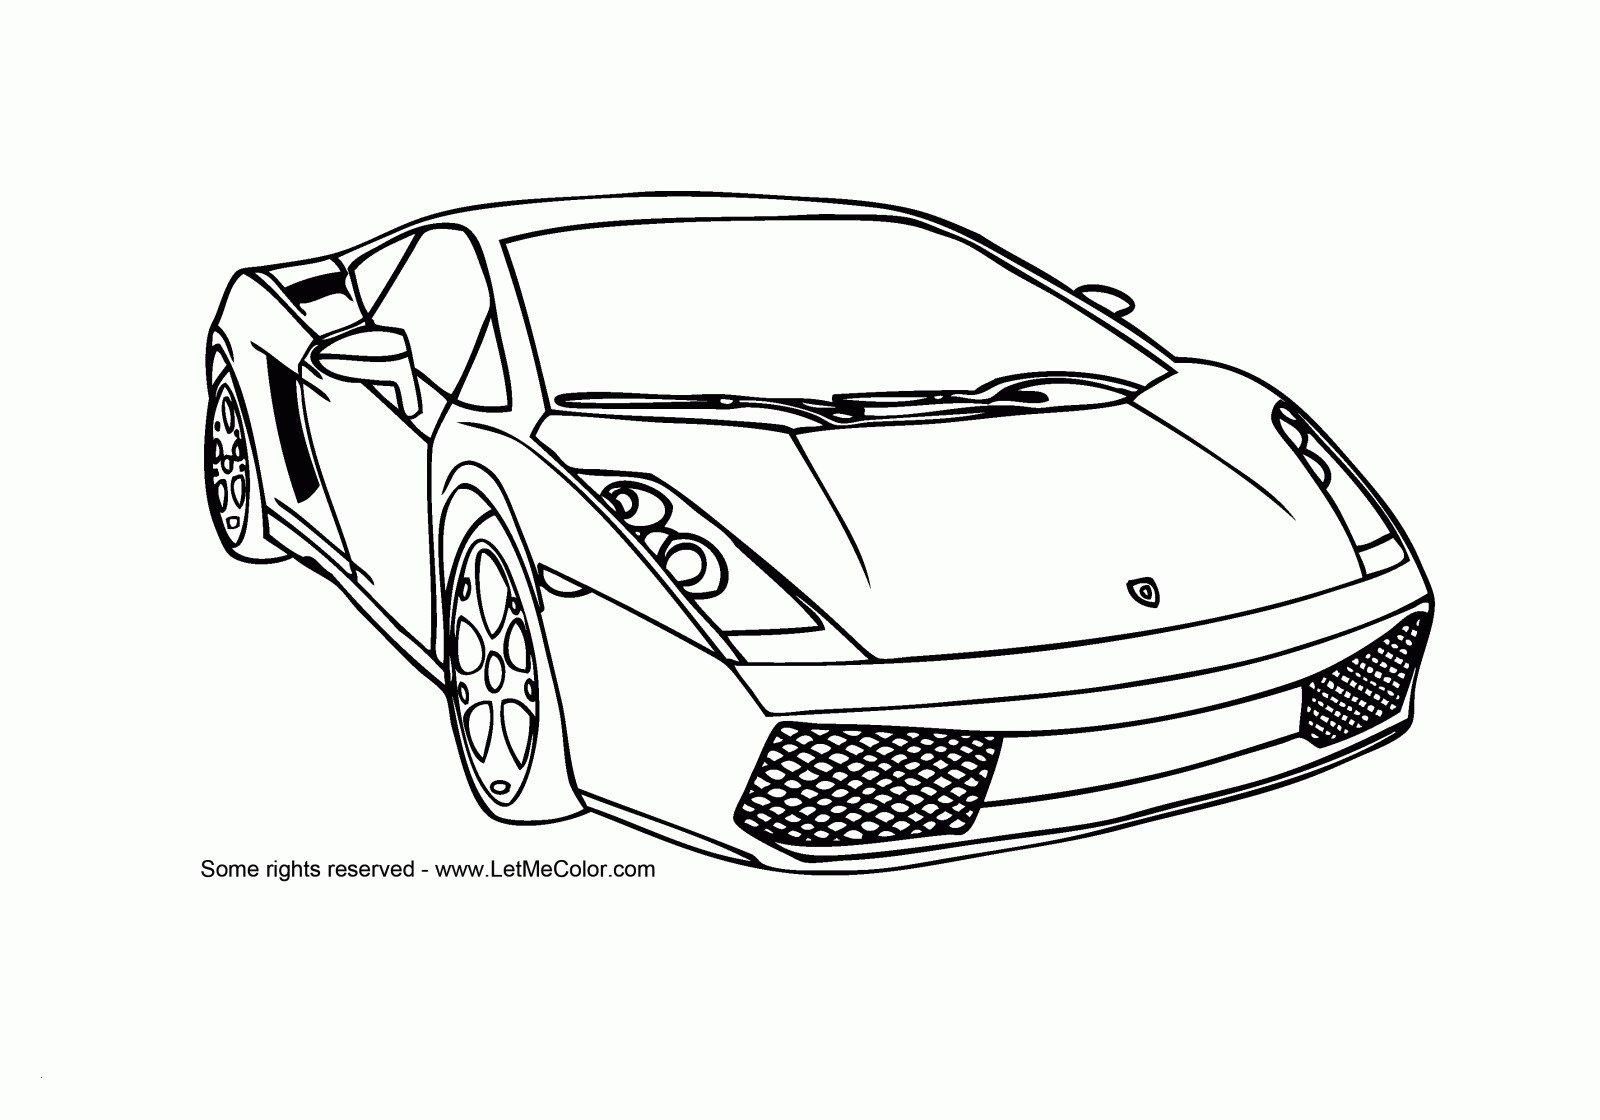 coloring pages of sports cars Collection-Sports Cars Coloring Pages Free Frisch Ausmalbilder Autos Ferrari 6-n